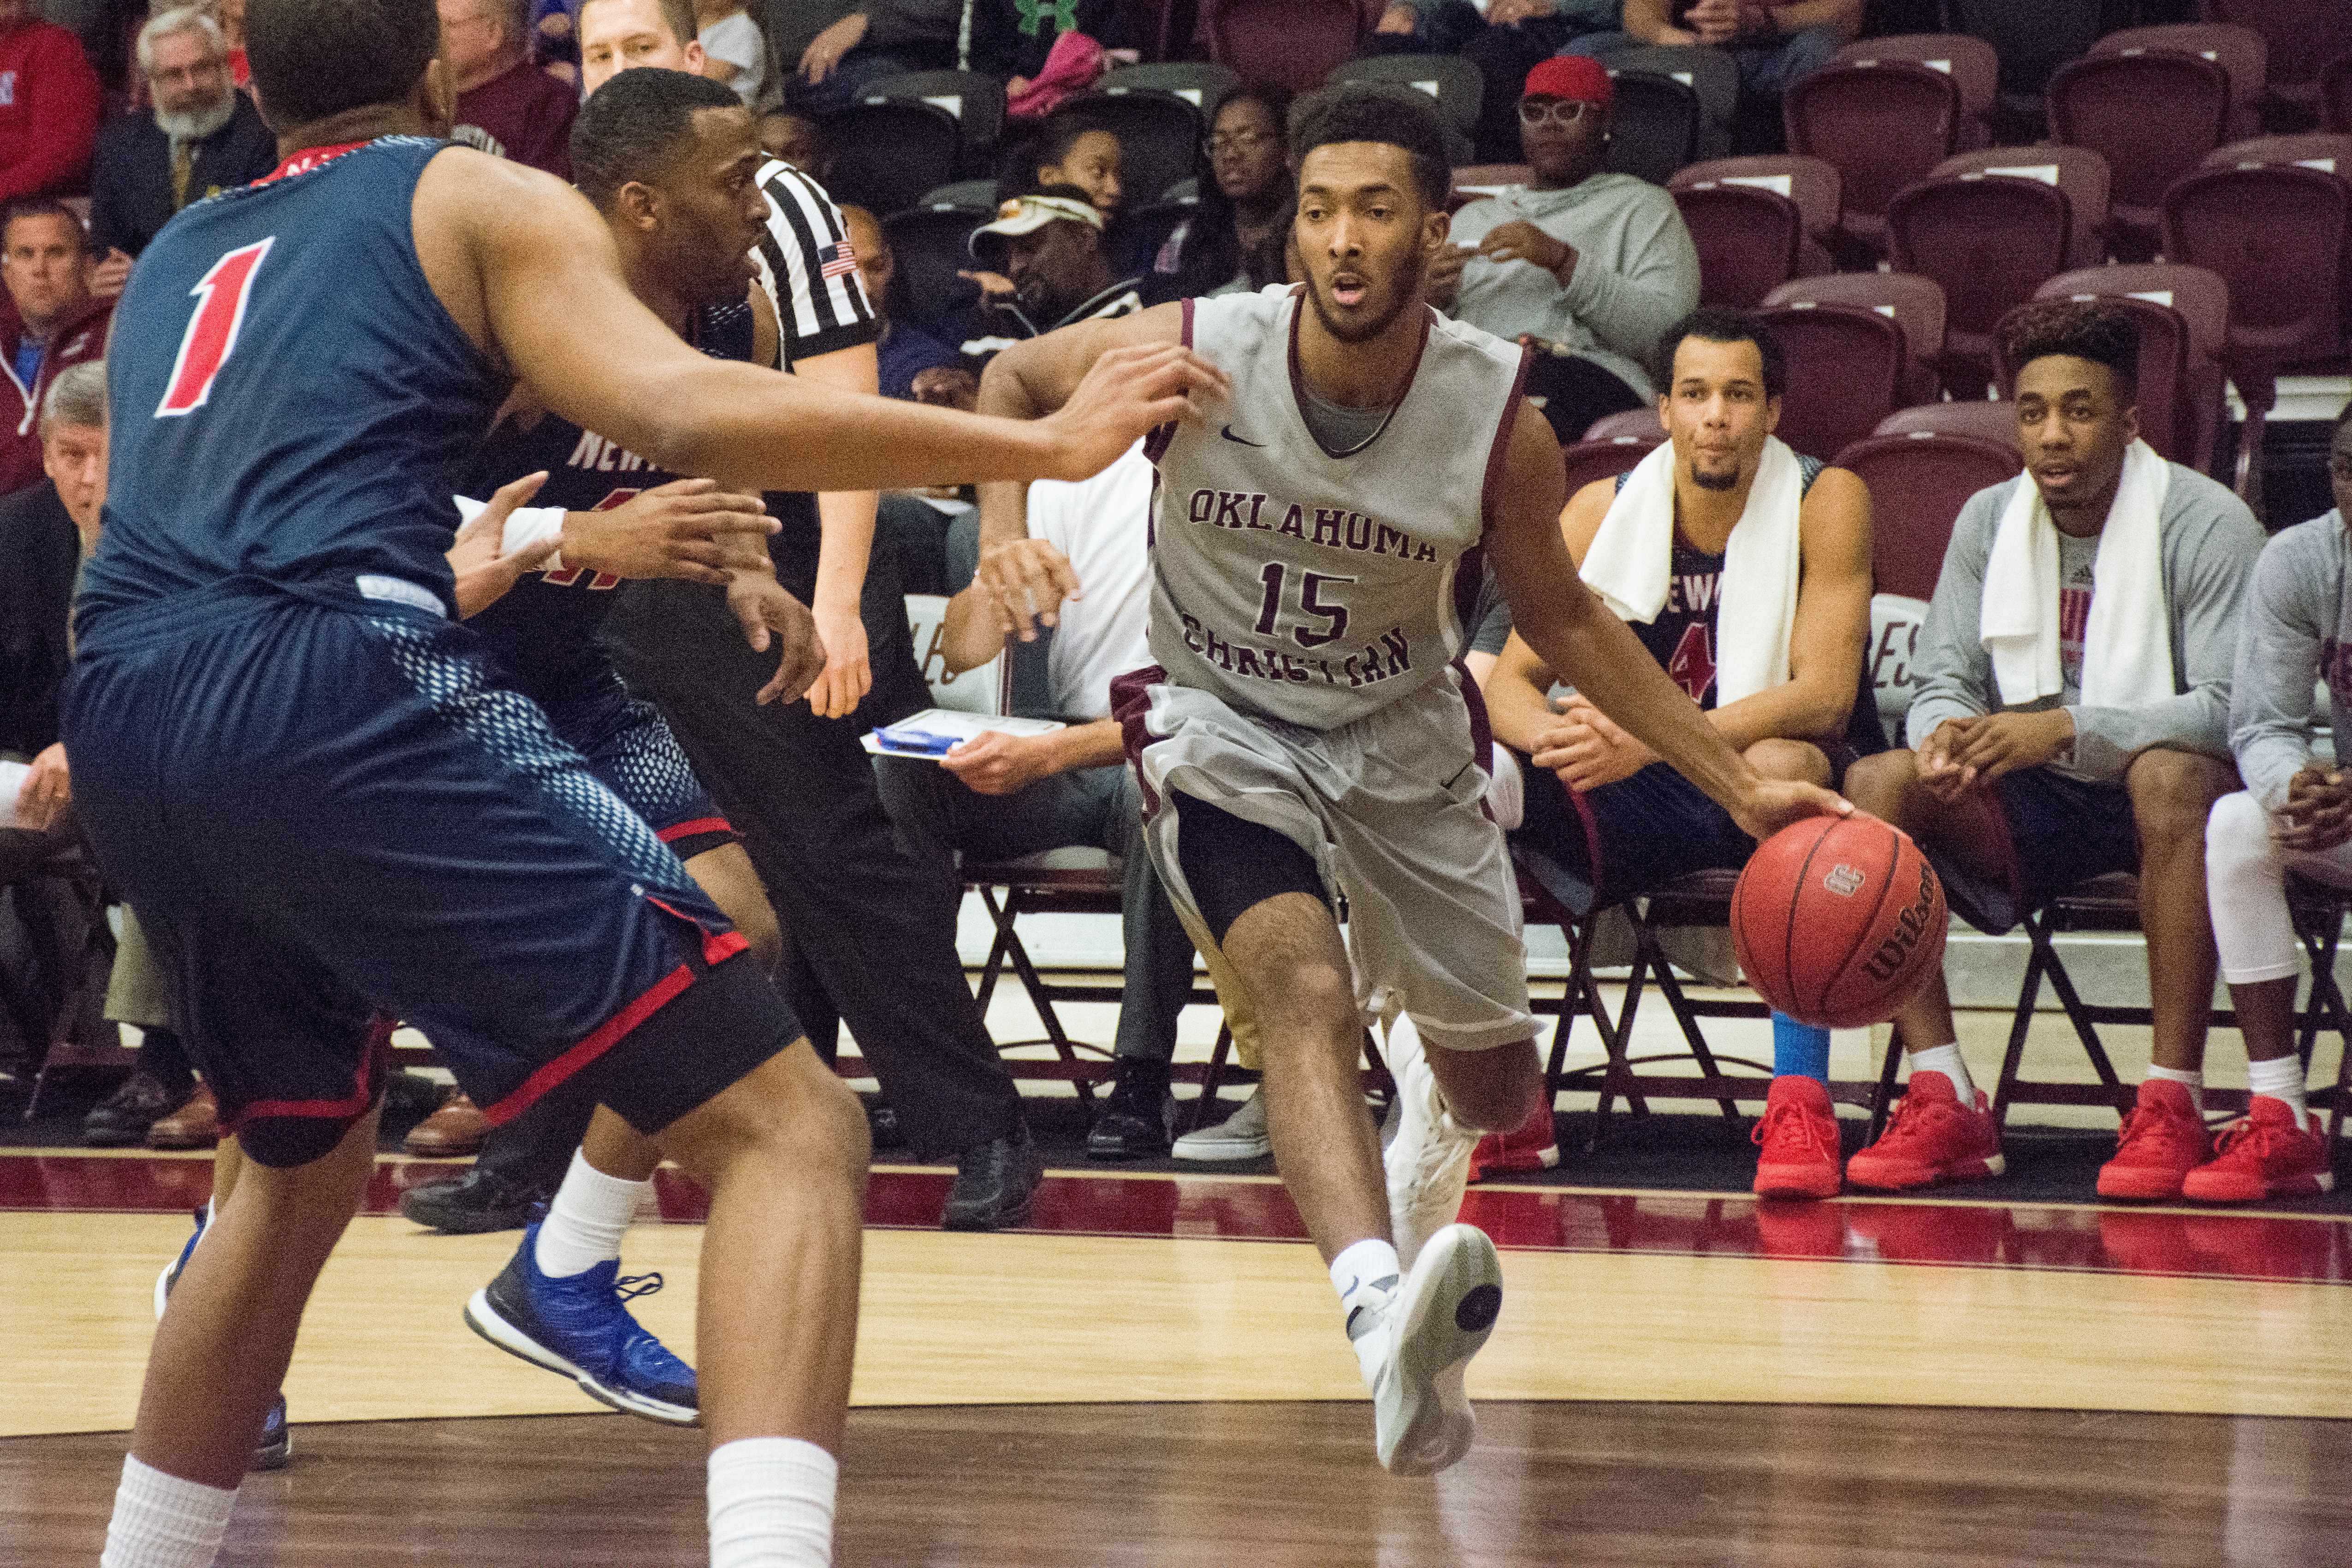 Elijah Strickland works his way around Newman University defenders on Feb. 11. Photo by Abby Bellow.